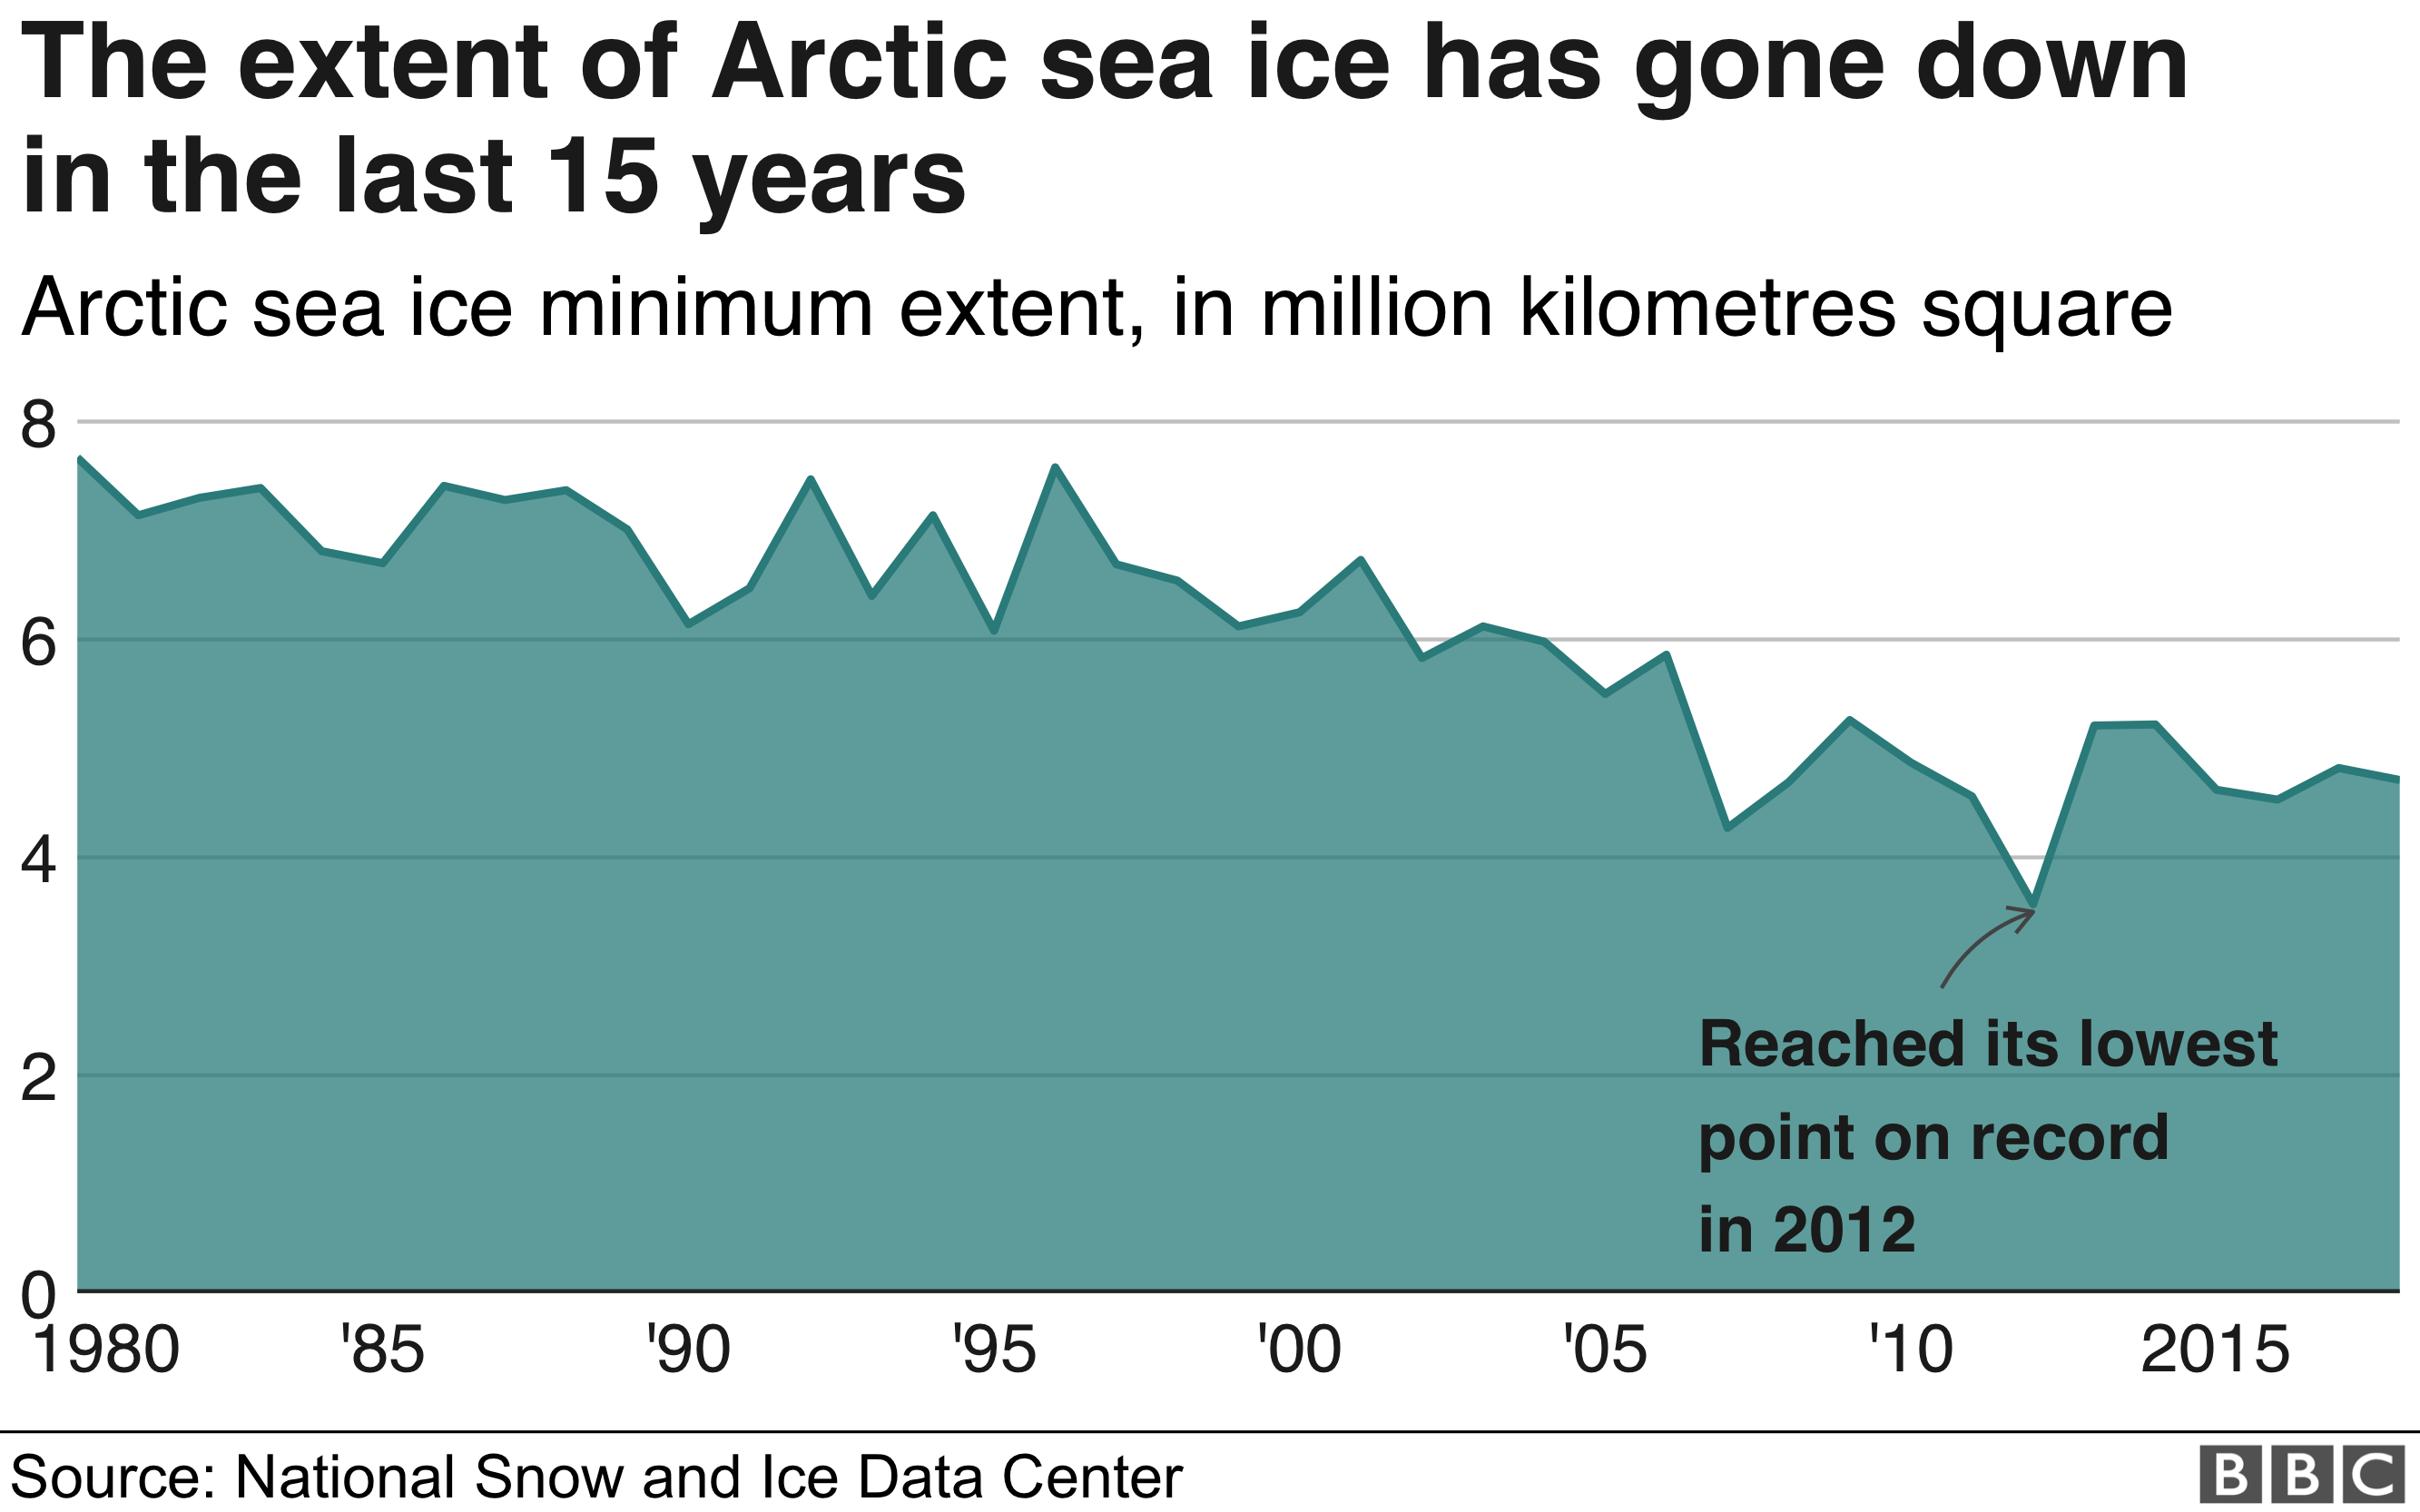 Sea ice extent is much lower than in 1980. It reached its lowest level in 2012